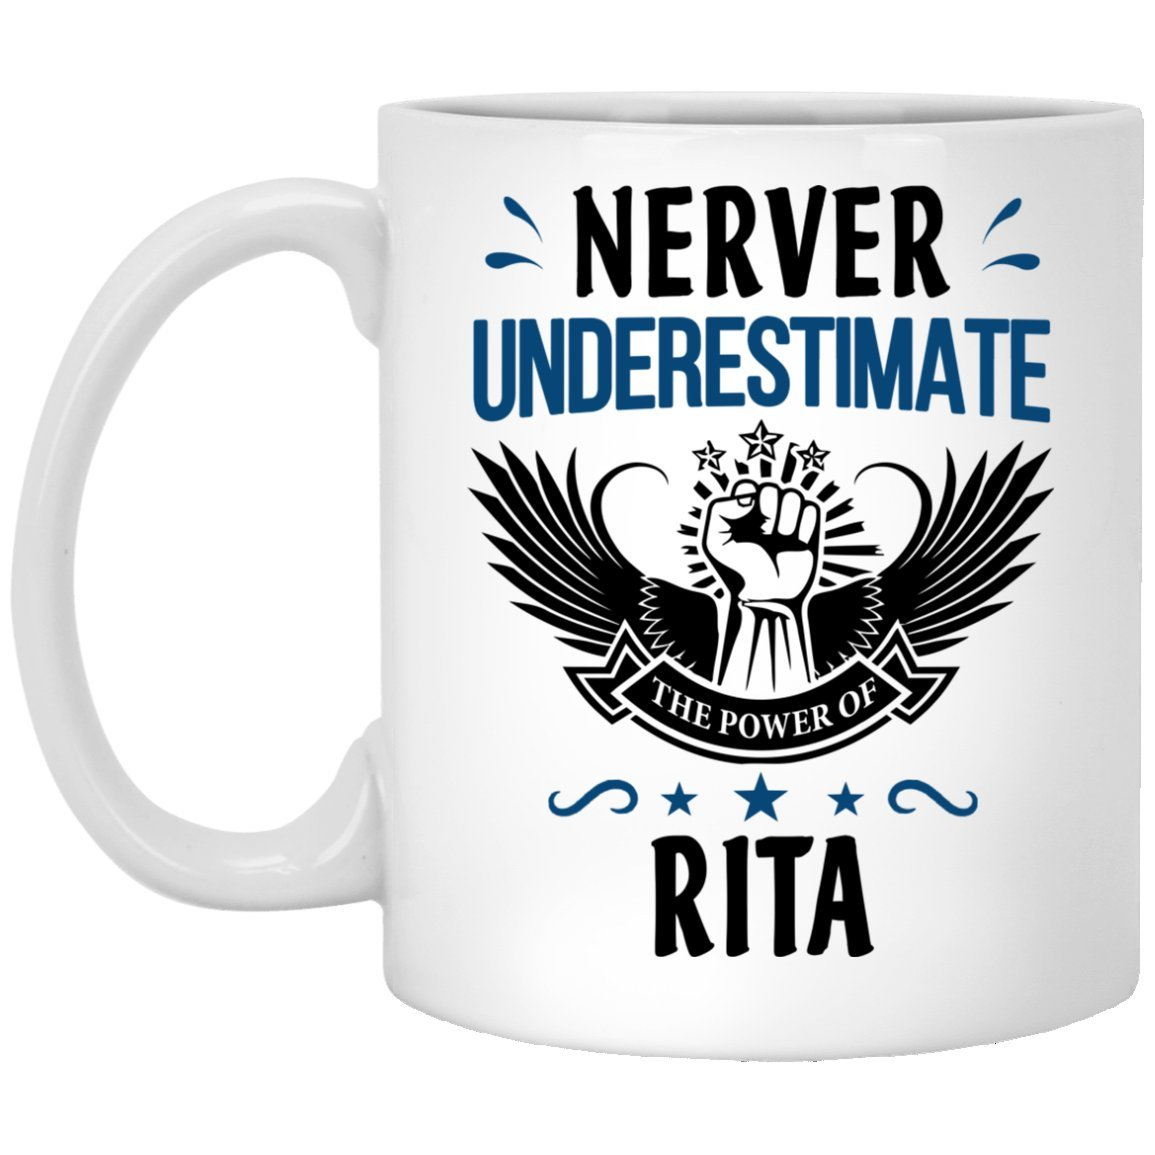 Personalized Name Coffee Mug - Never Underestimate The Power Of RITA Ceramic Mugs - Personal Name Gifts For RITA on Birthday Xmas - Gag Inspirational Gift Coffee Tea Cup White Ceramic 11 Oz